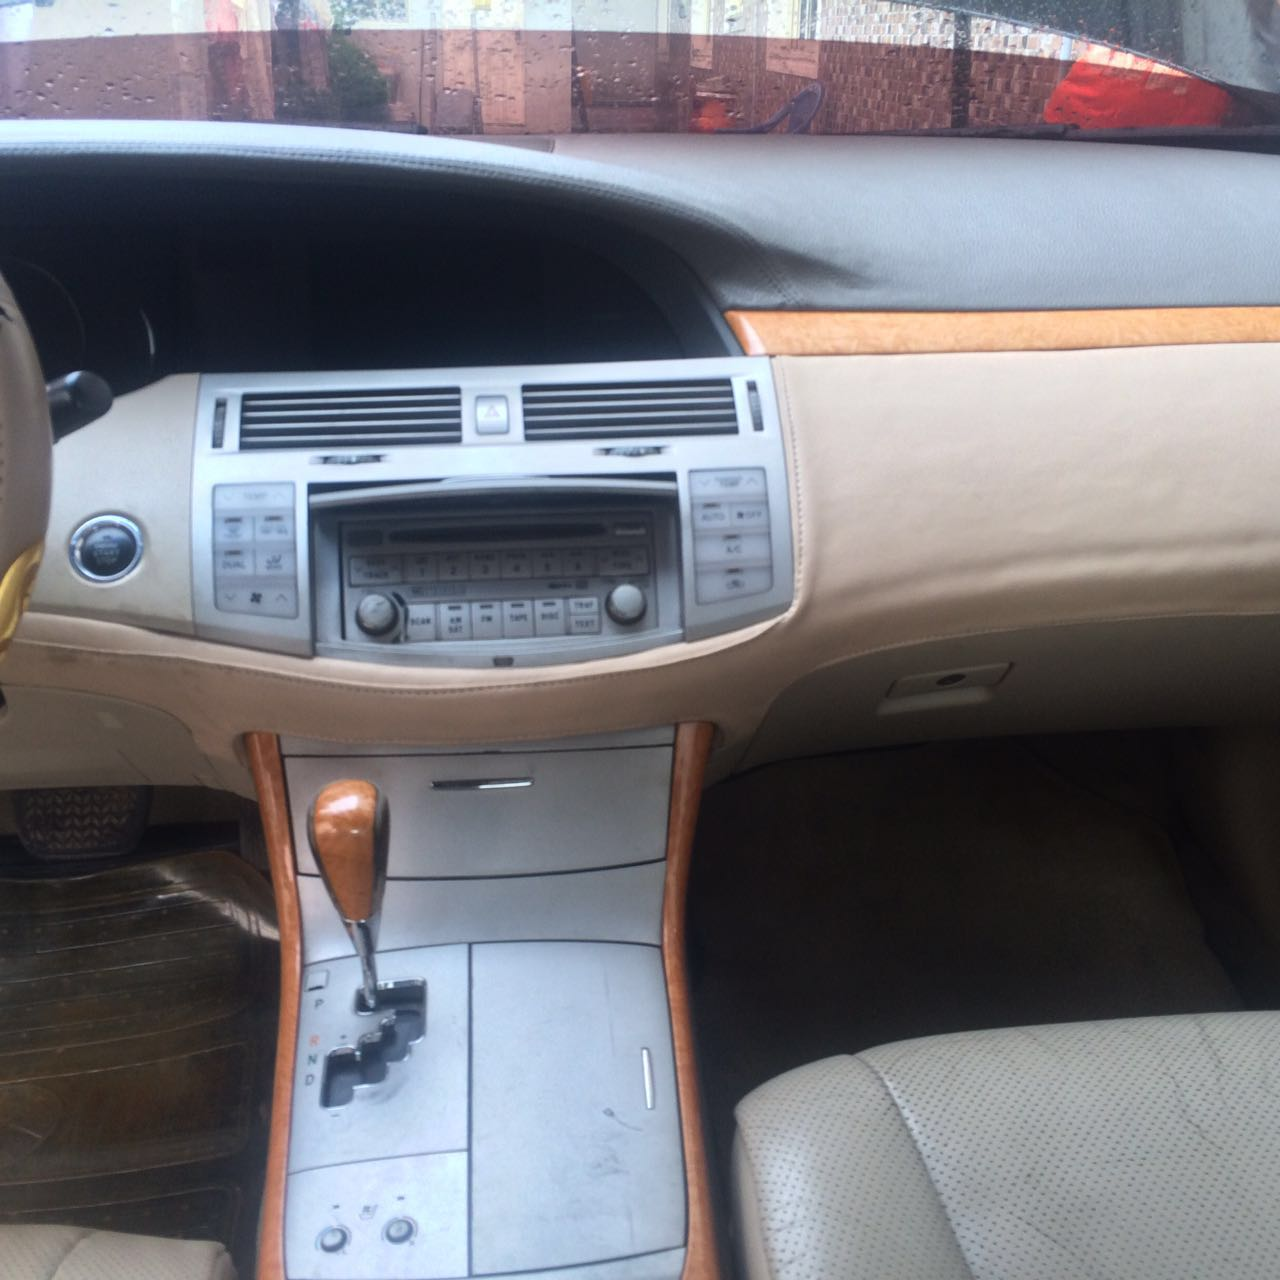 Toyota Avalon For Sale Used: Registered 2007 Toyota Avalon For Sale@1.5m